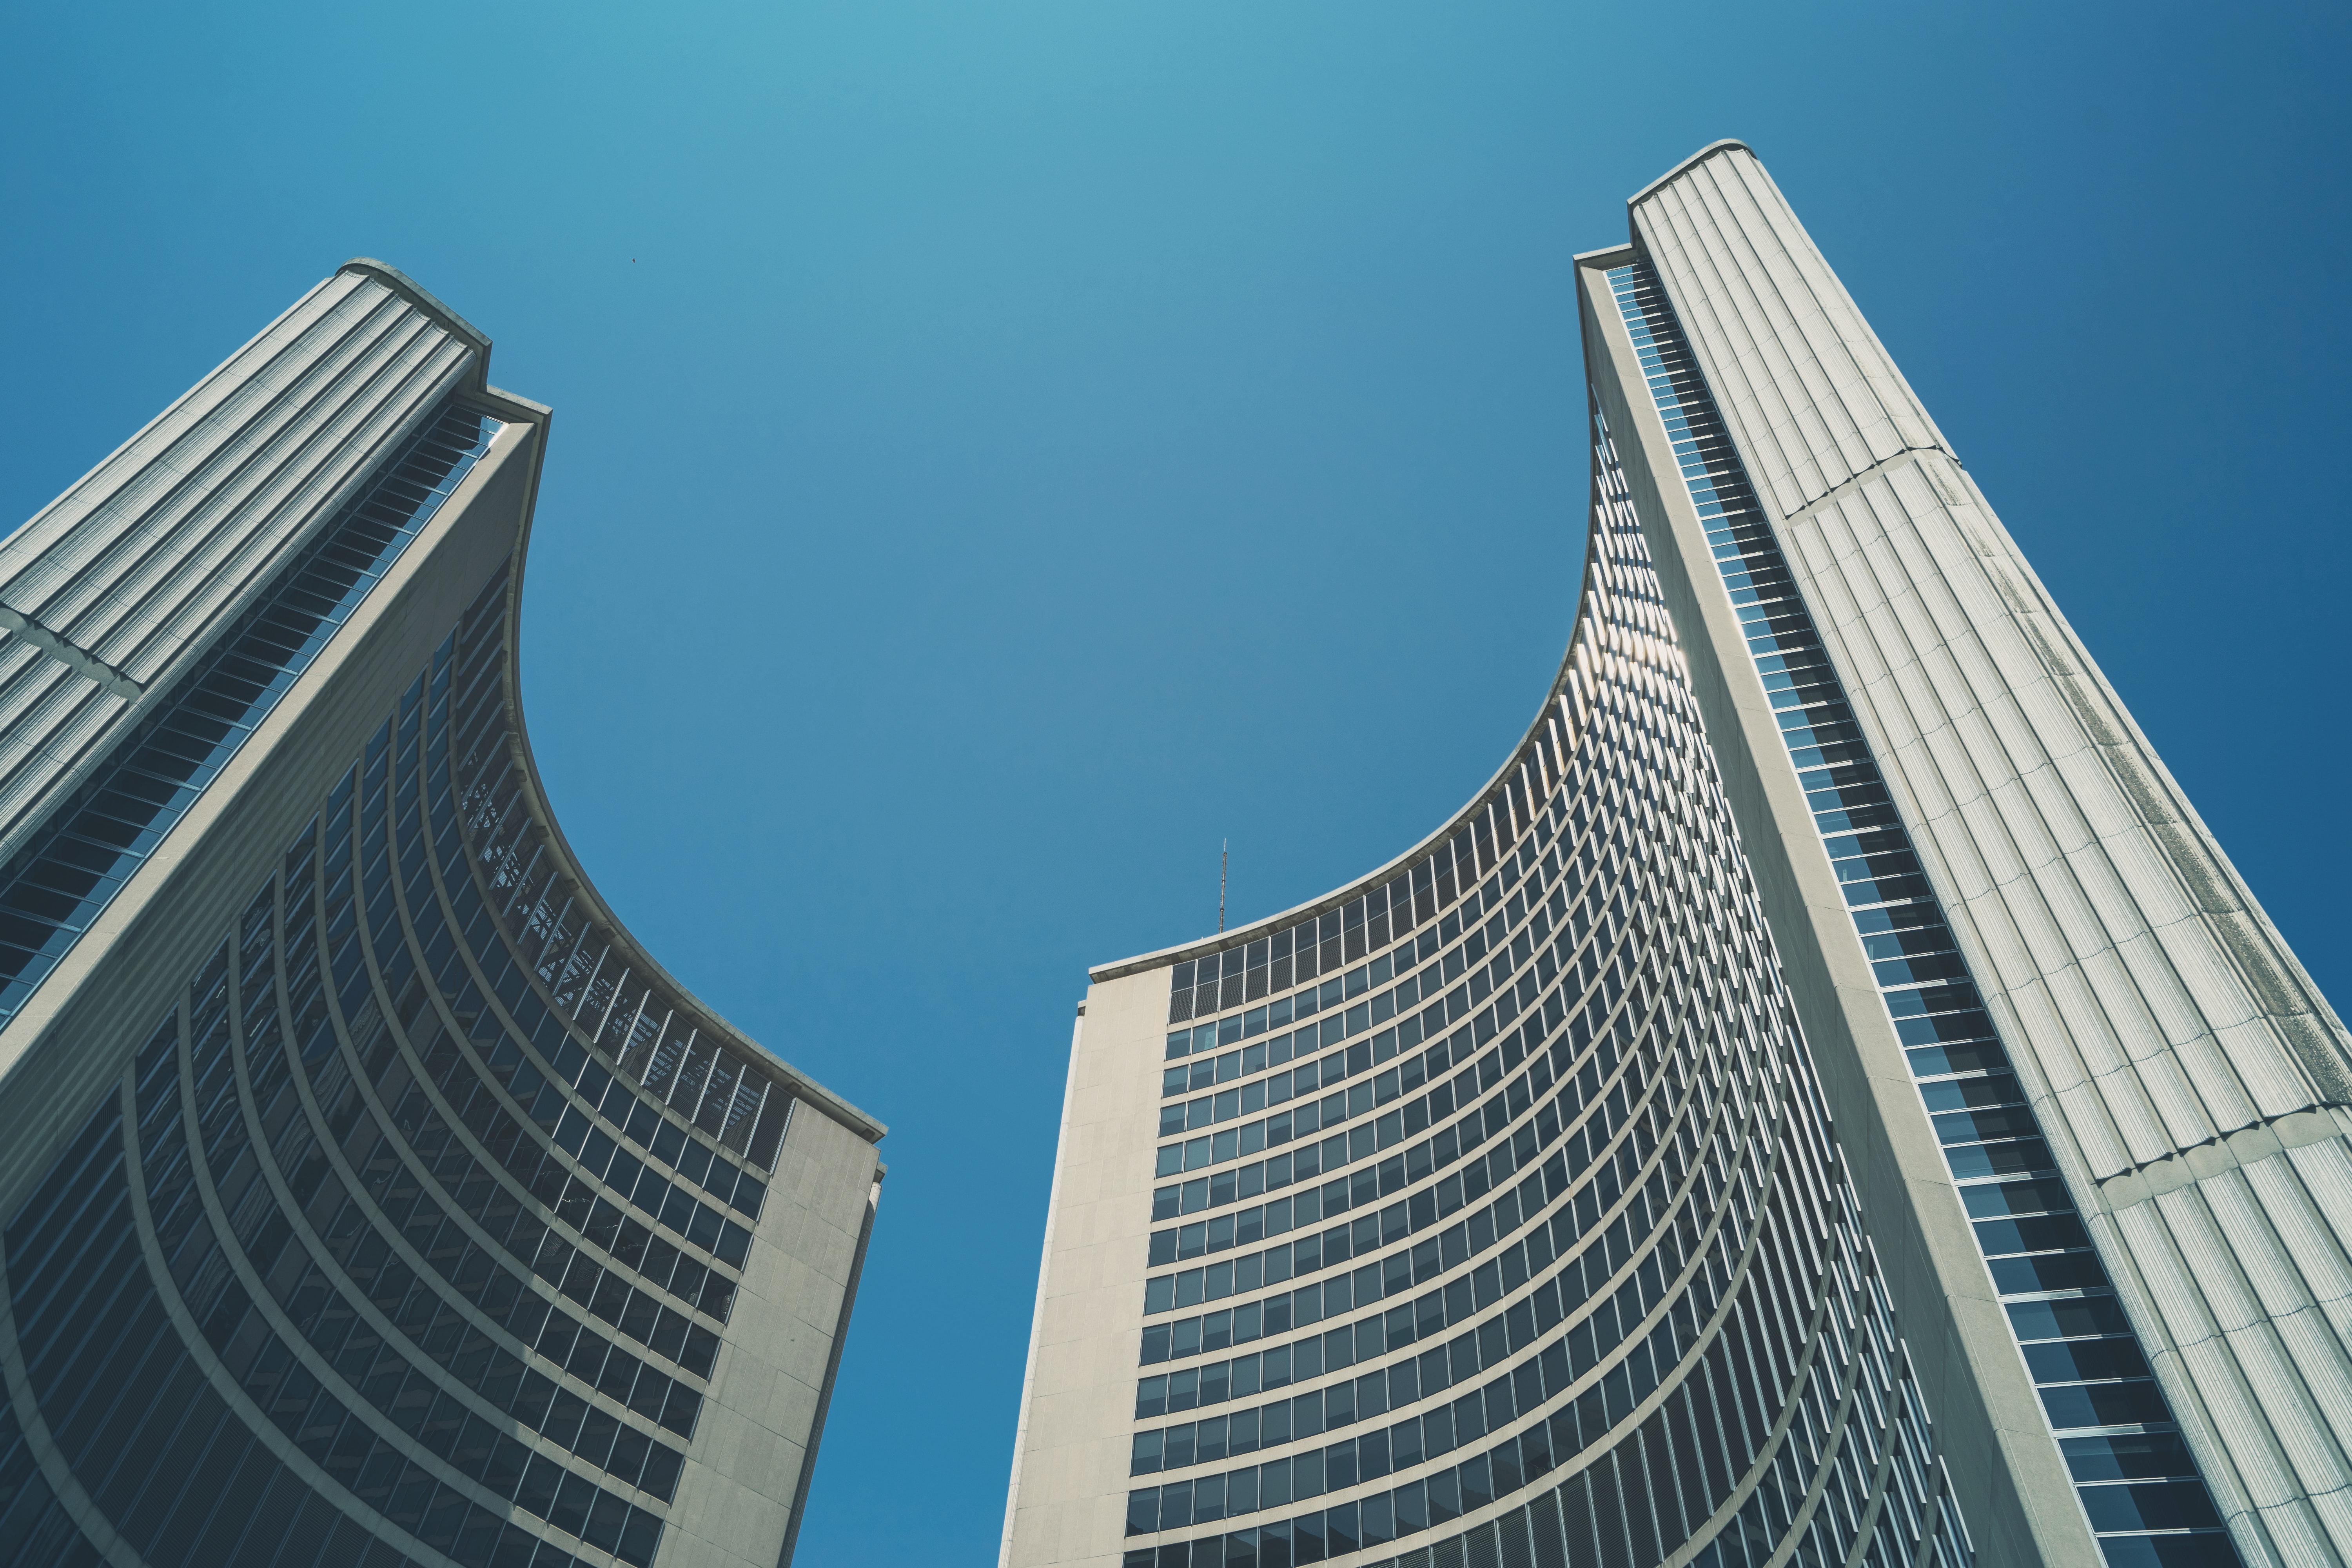 Two curved towers of Toronto City Hall under a blue sky